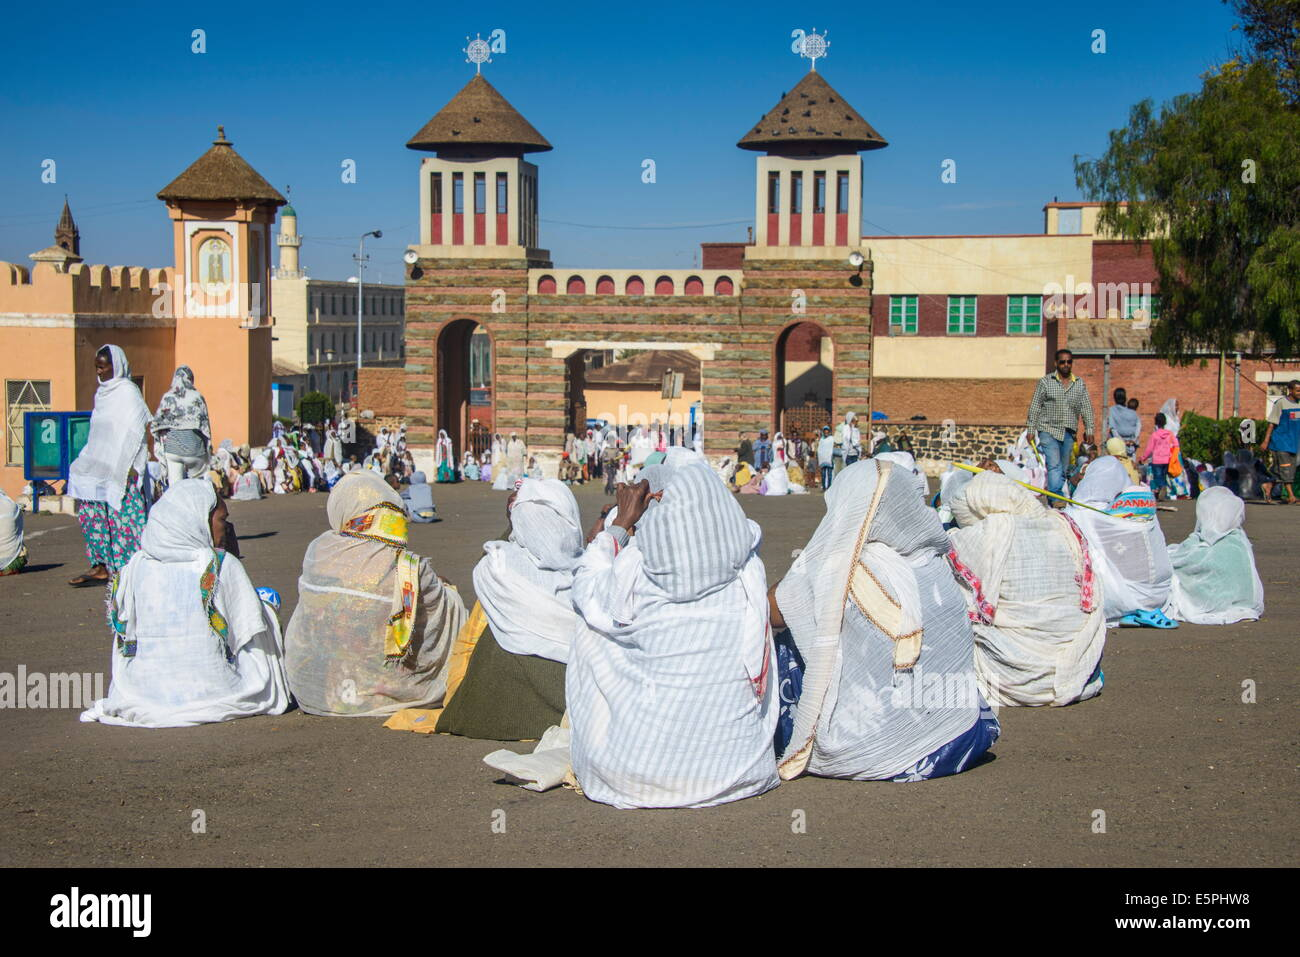 Orthodox women praying at the Easter ceremony, Coptic Cathedral of St. Mariam, Asmara, capital of Eritrea, Africa - Stock Image